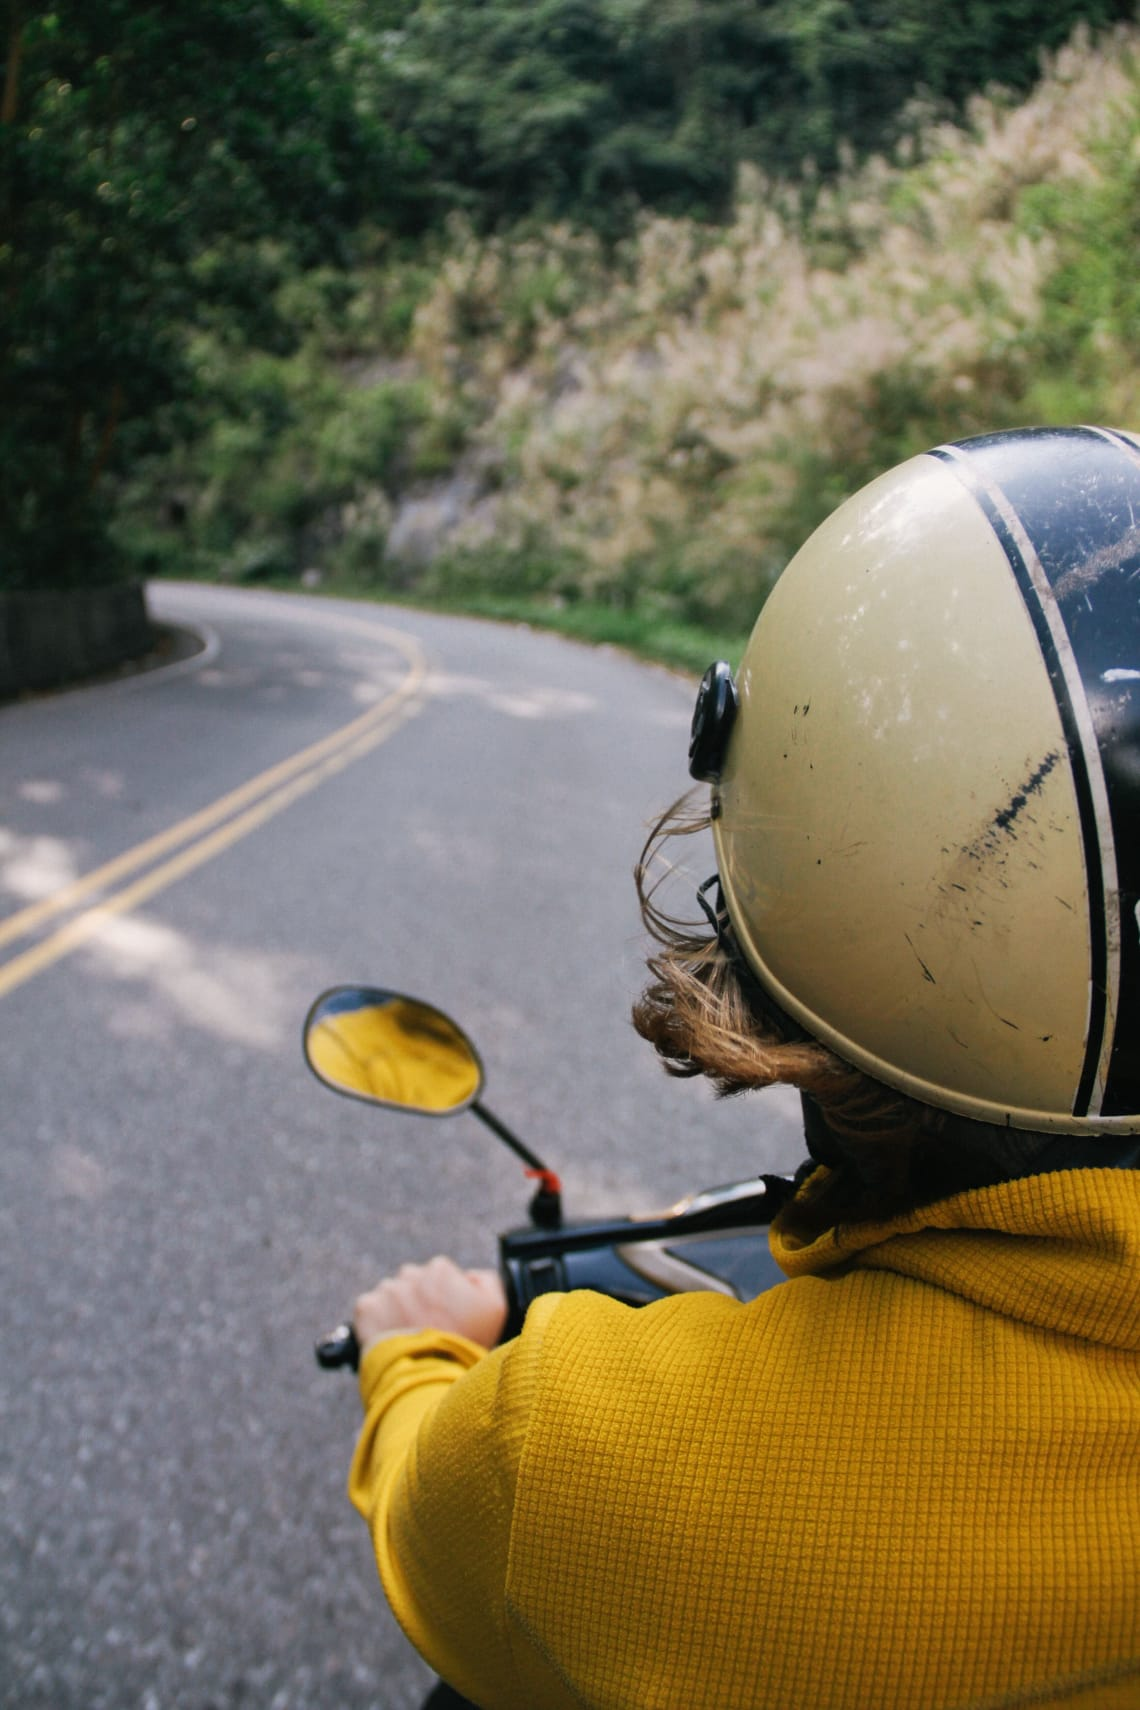 Slow travel: adventurer on a scooter